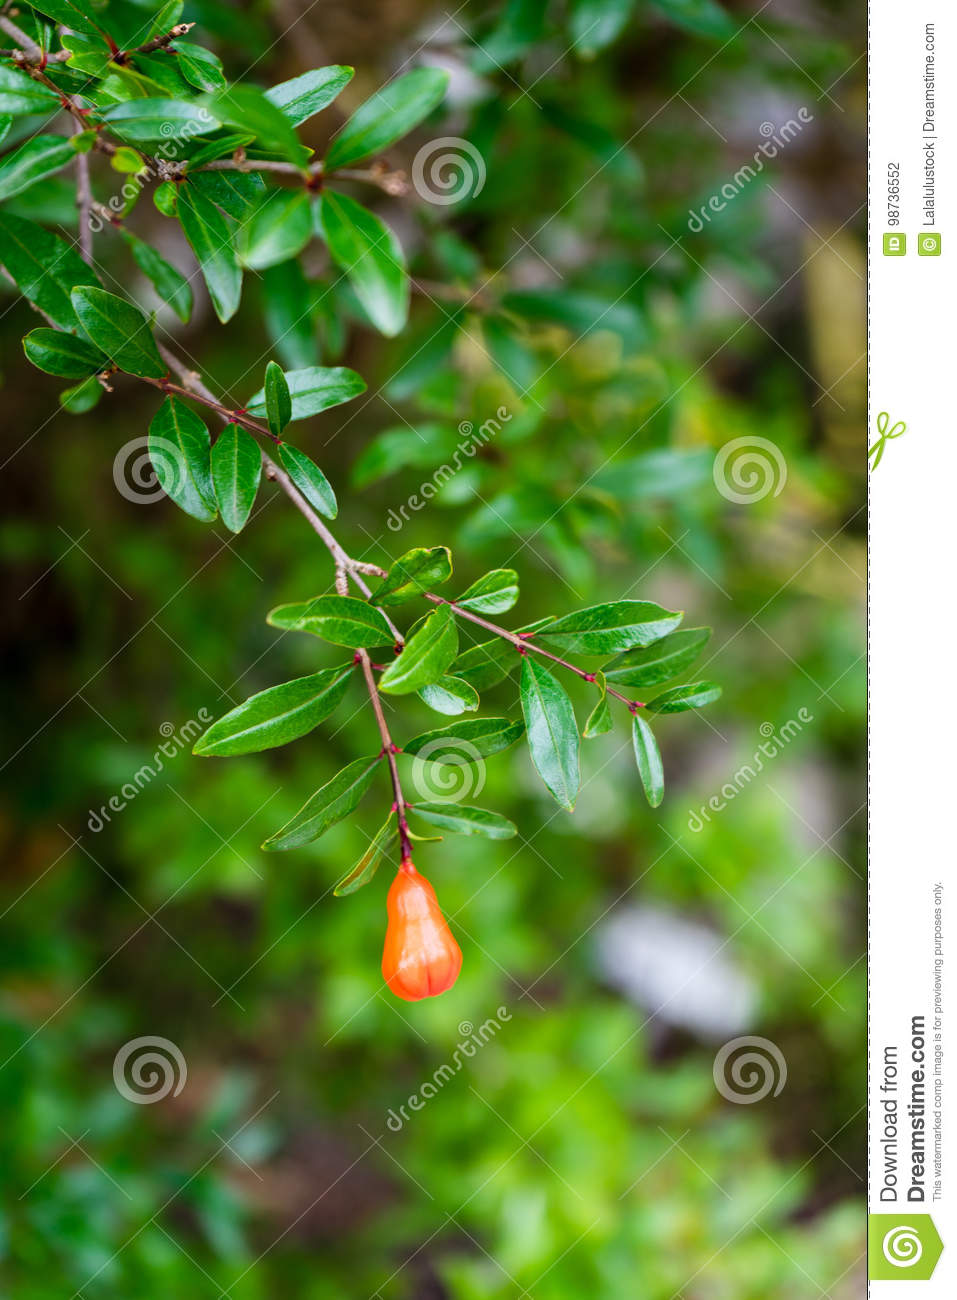 Single red berry fruit hanging from tree